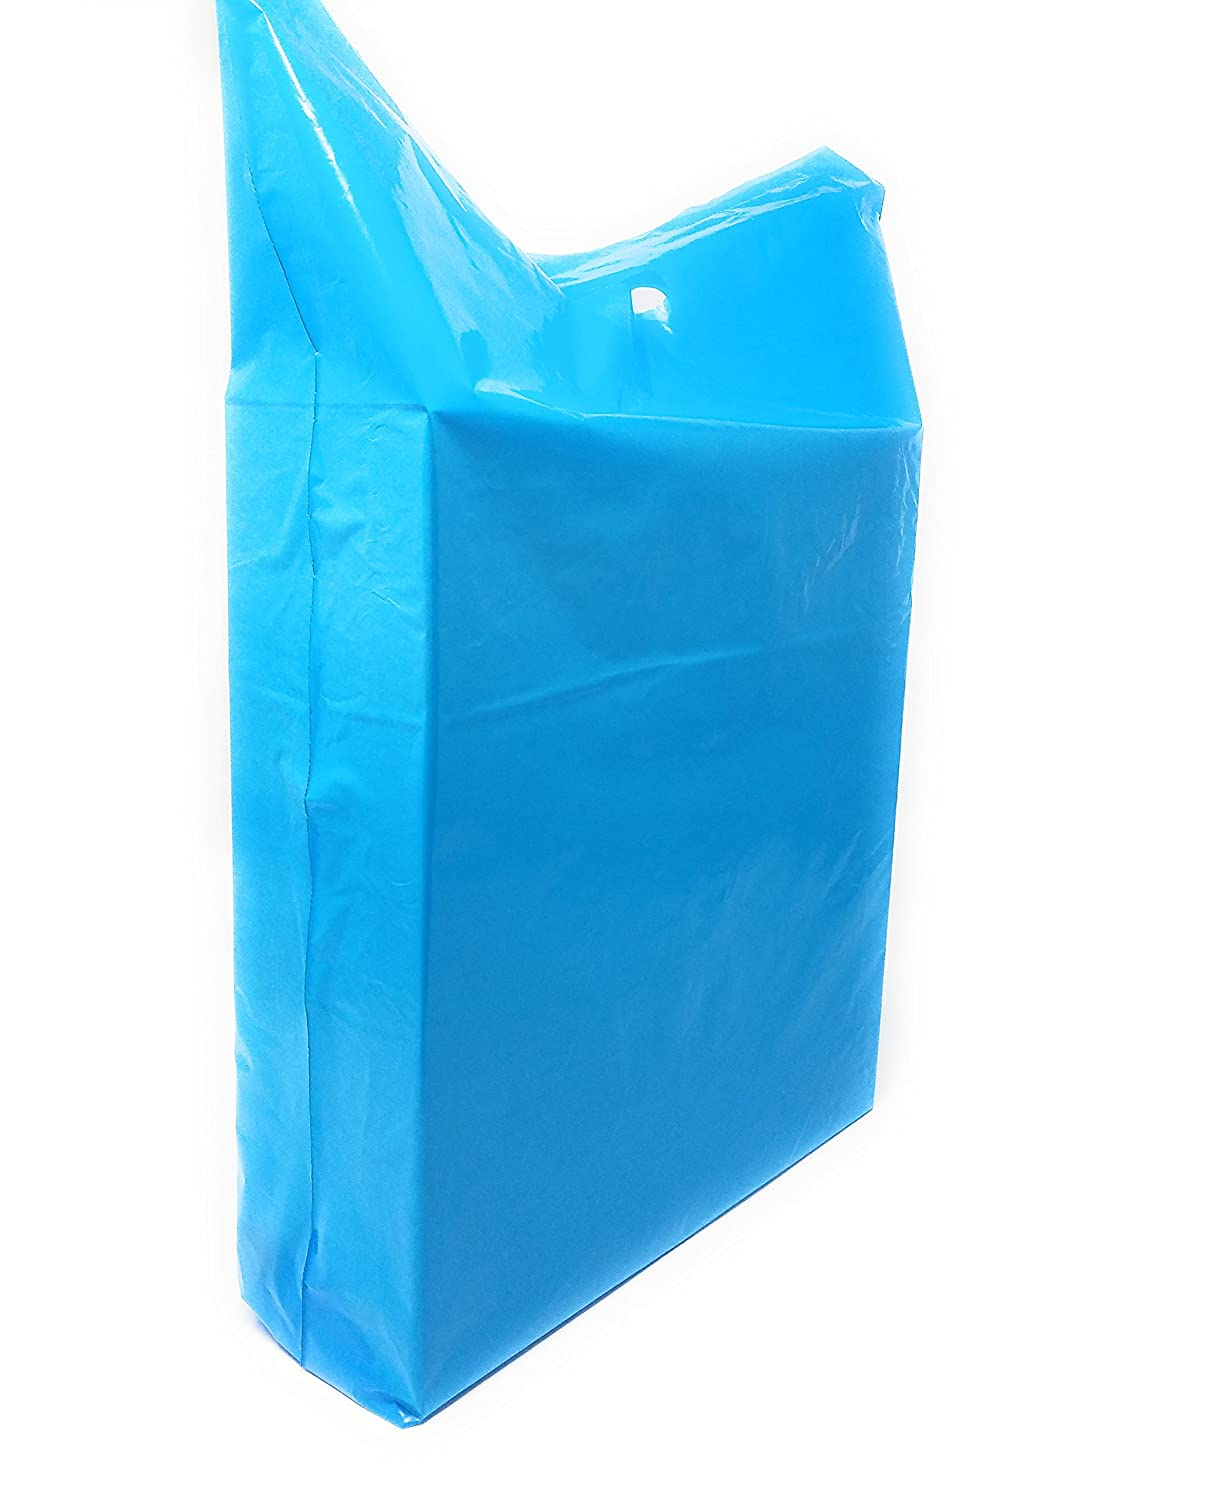 Color Blue Die Cut Handles 100 Pack 15 x 18 1.25 mil Thick Blue Merchandise Plastic Shopping Bags Parties 2 in Gusset Perfect for Retail Party Favors Birthdays 100/% Recyclable